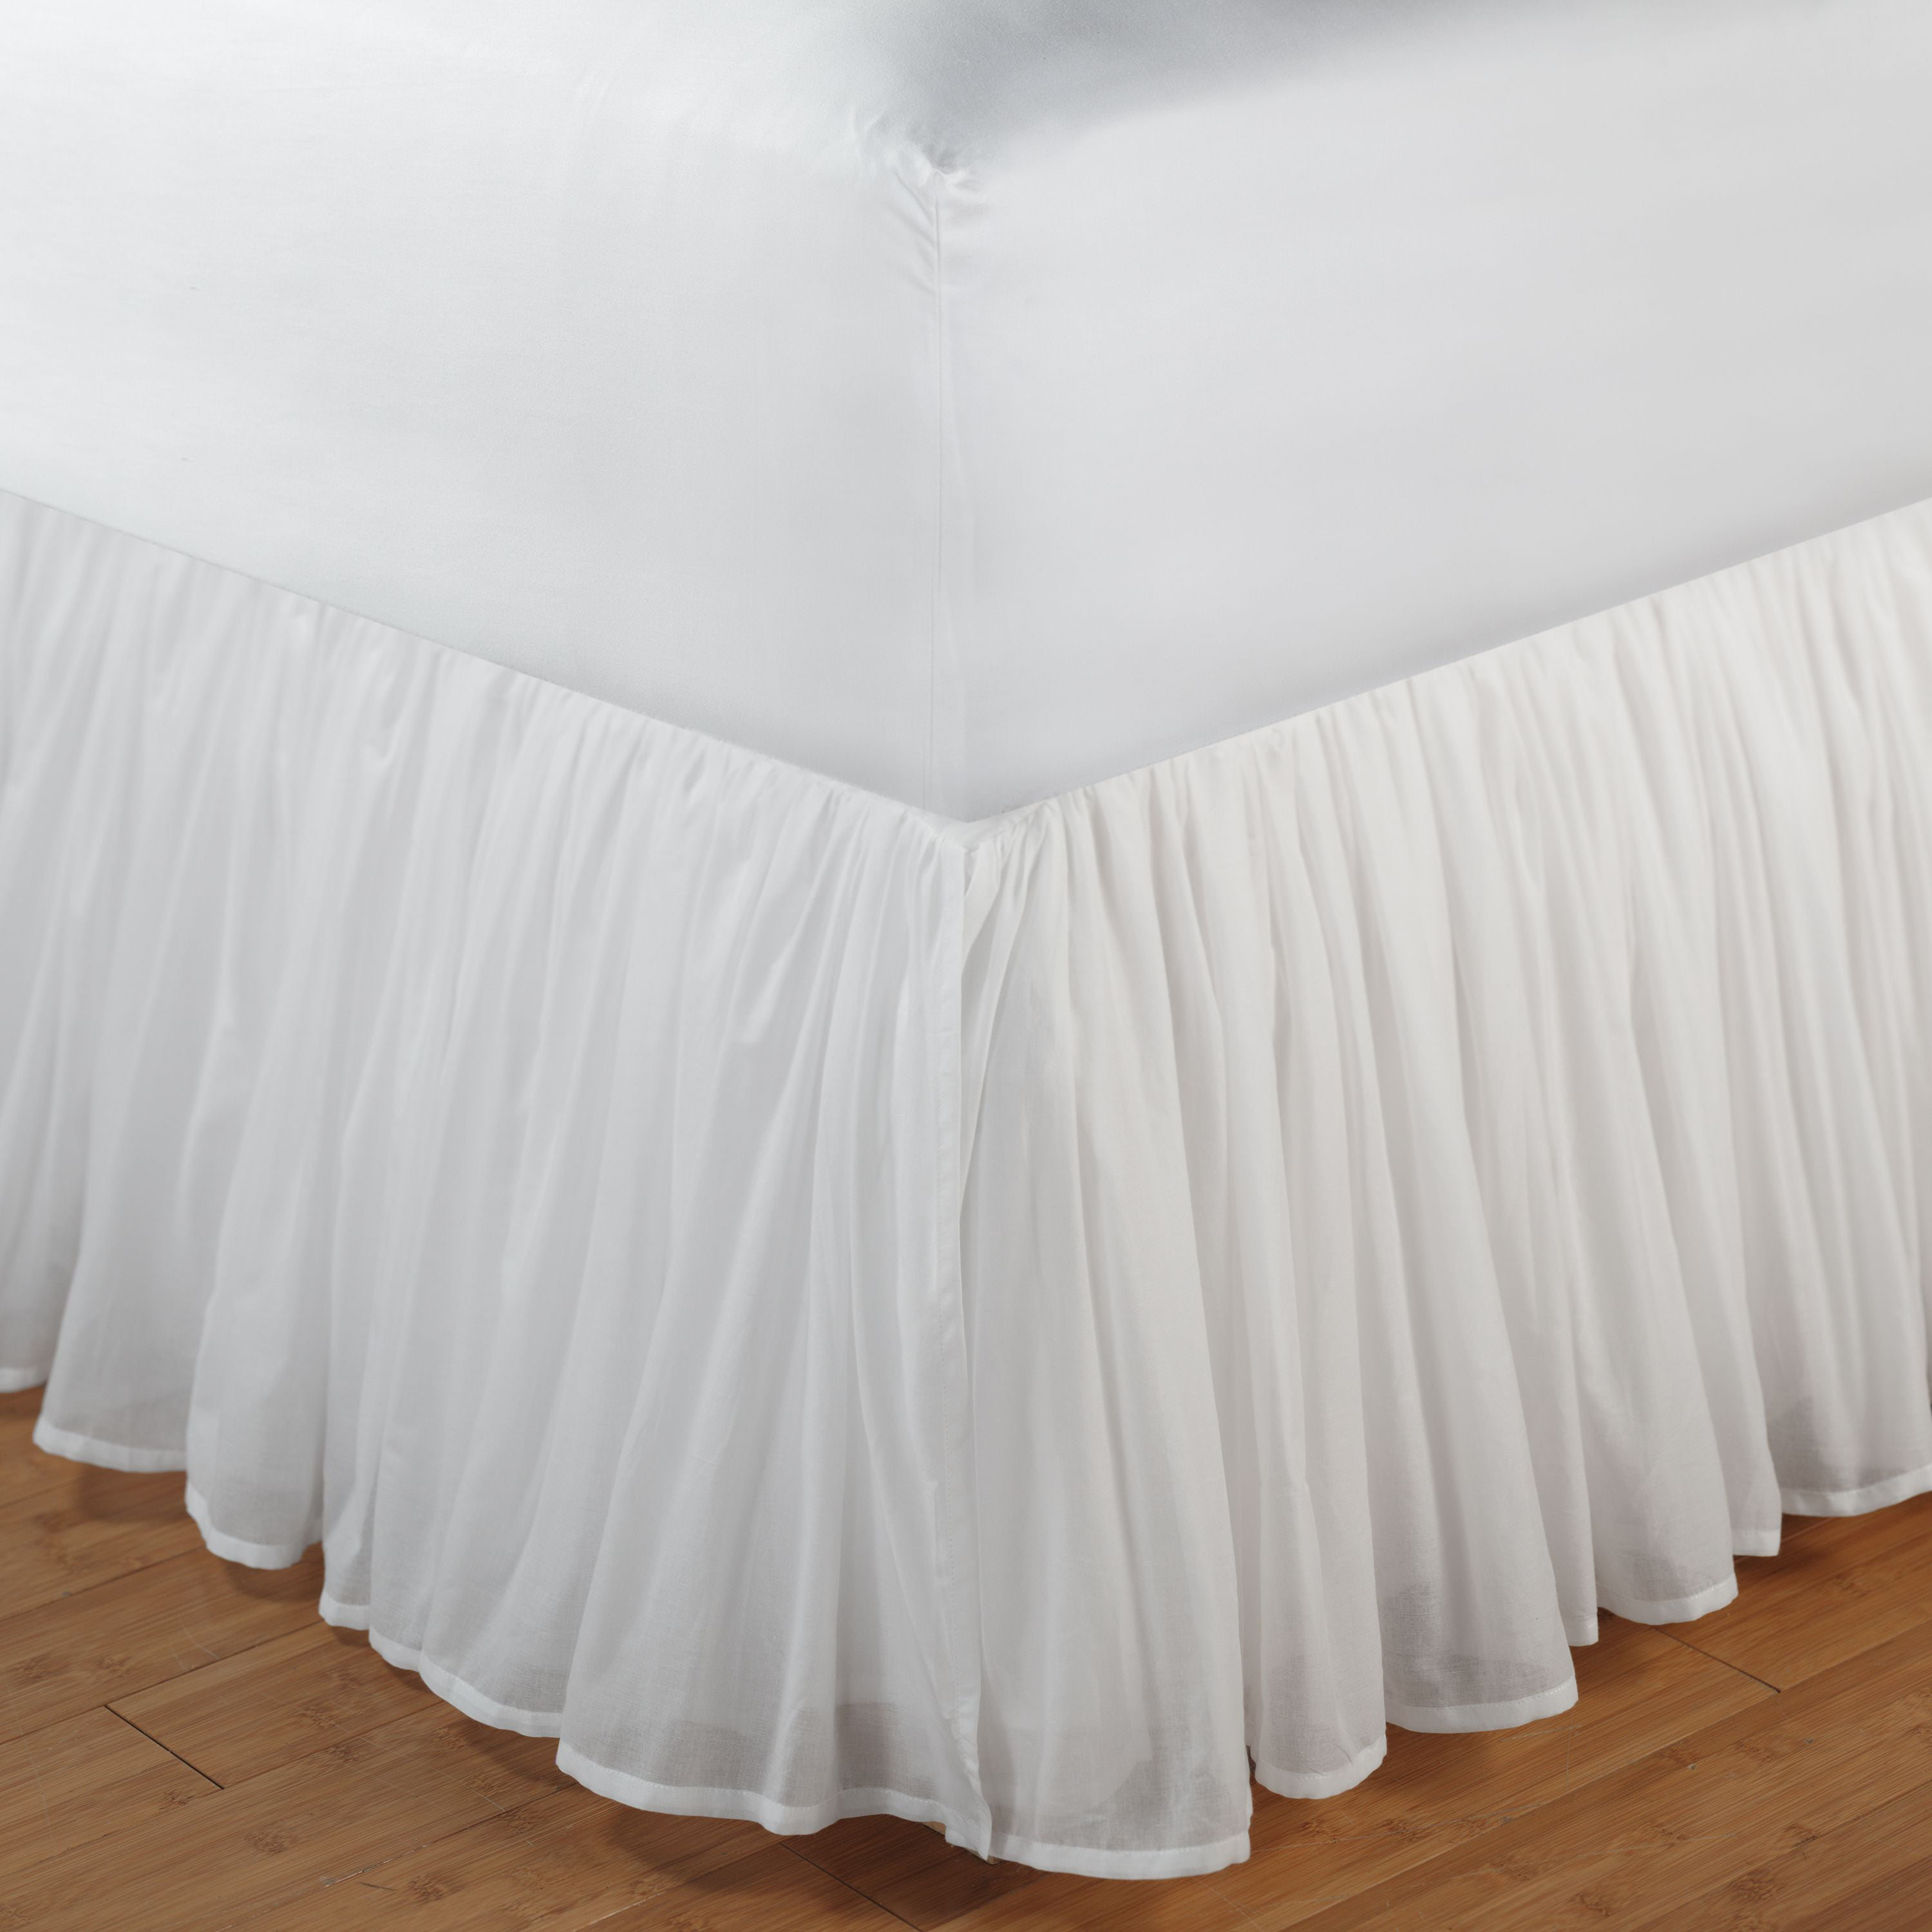 "Cotton Voile White Bedskirt 18"" Queen by Greenland Home Fashions"